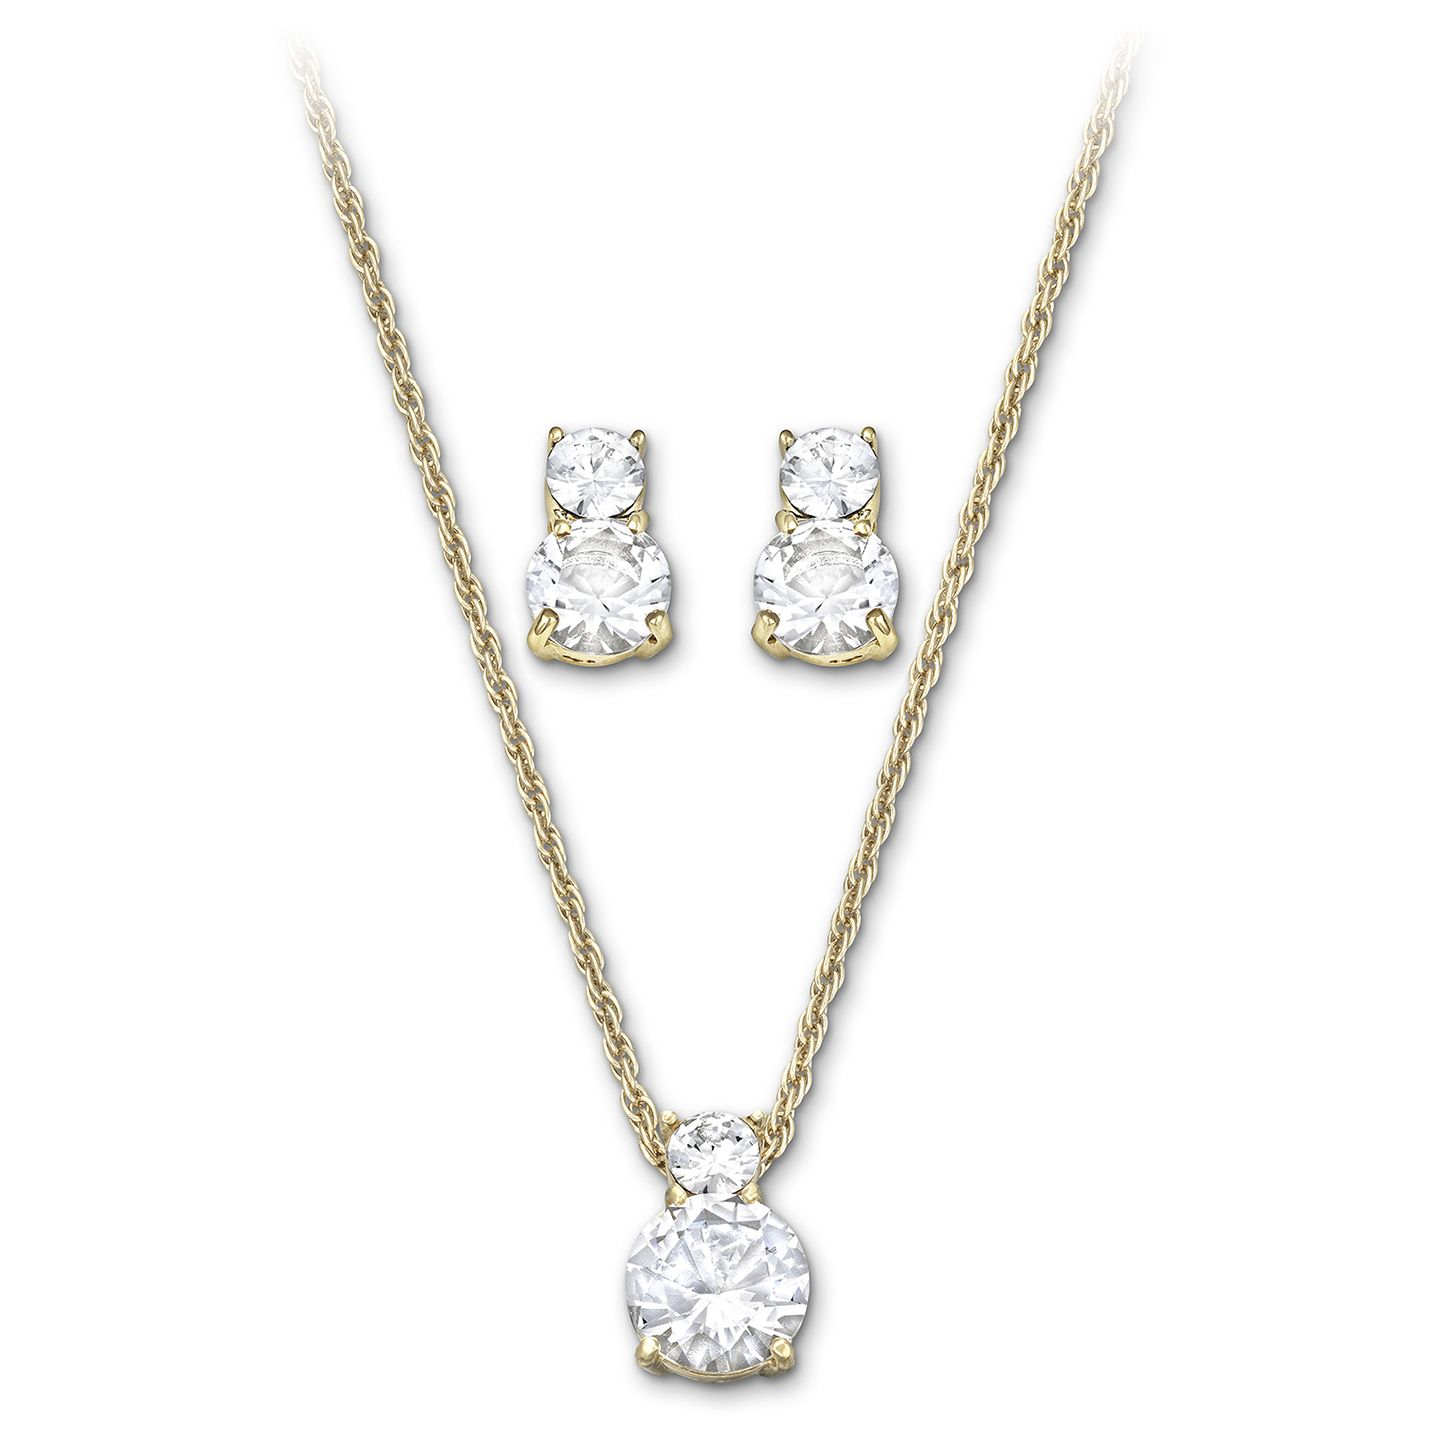 Swarovskius brilliance set is classic enough to sparkle on your big